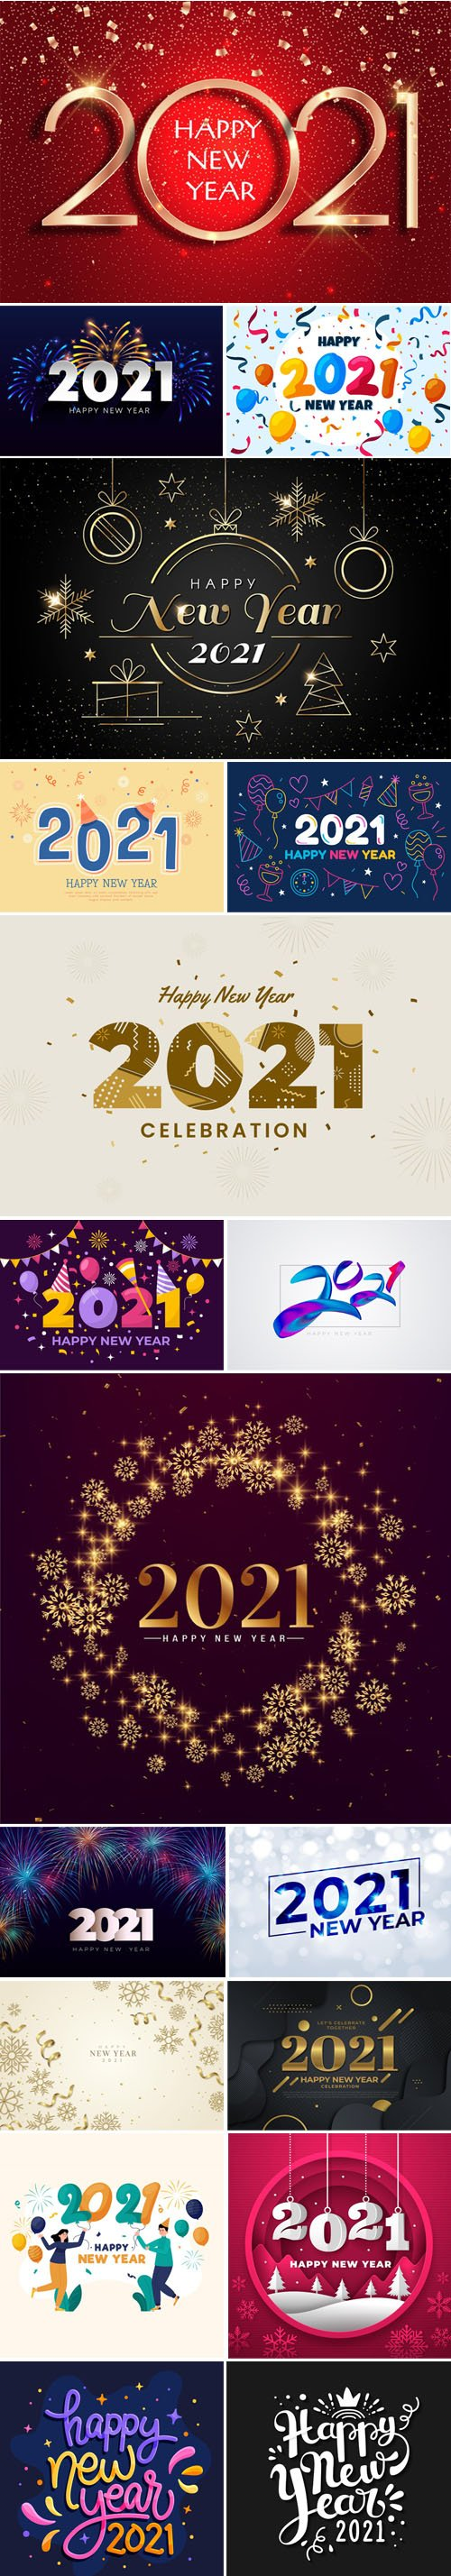 18 Happy New Year 2021 Backgrounds & Lettering Vector Collection